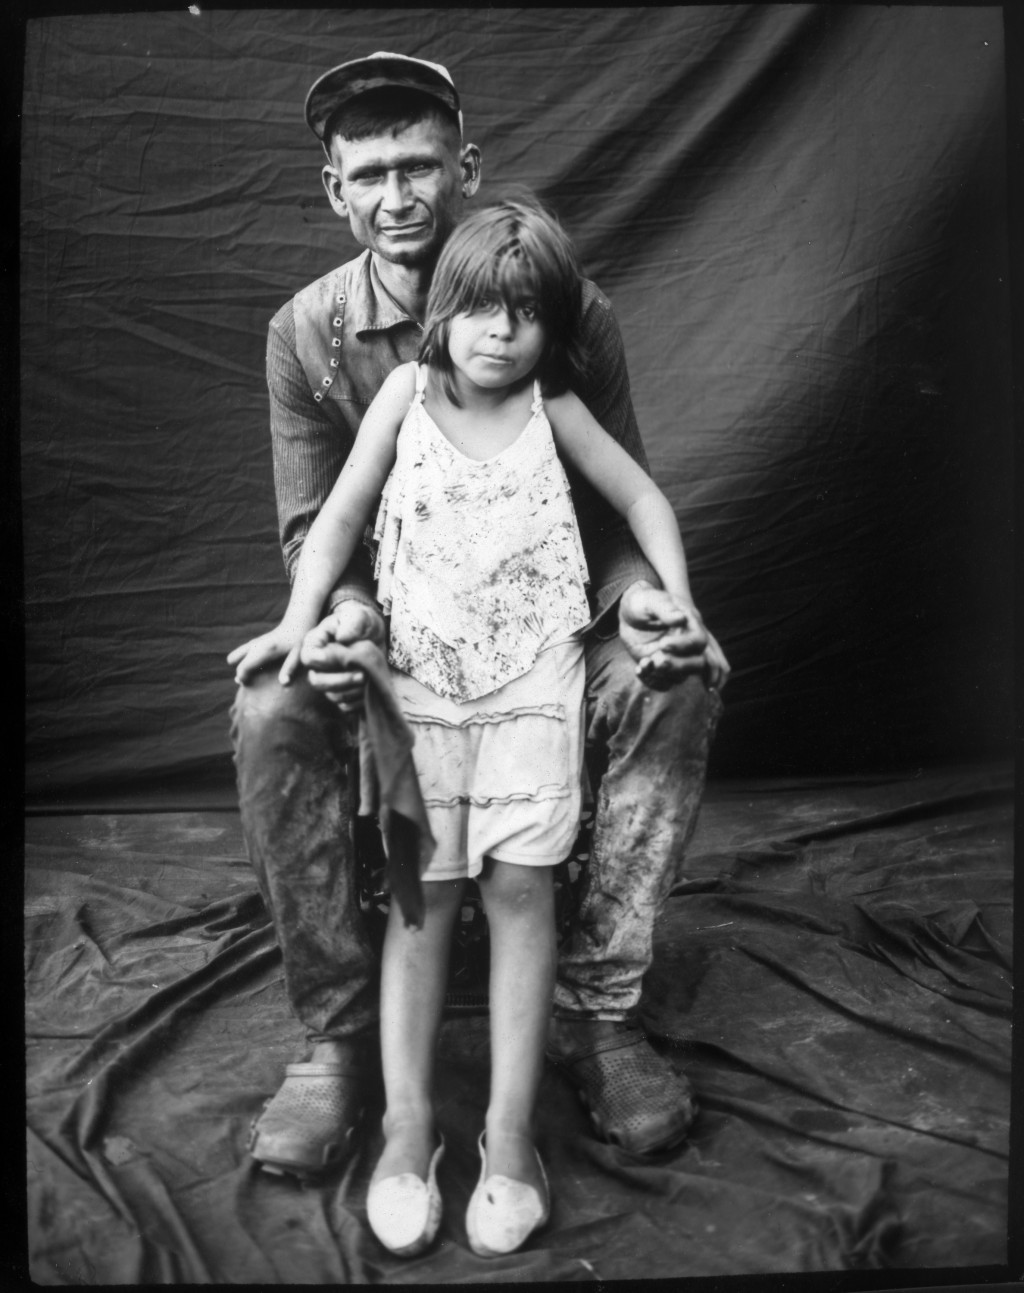 Fisherman Emanuel Salcedo poses for a portrait with his daughter Emilialsen after a day of harvesting crabs from oil-contaminated Lake Maracaibo in Ca...